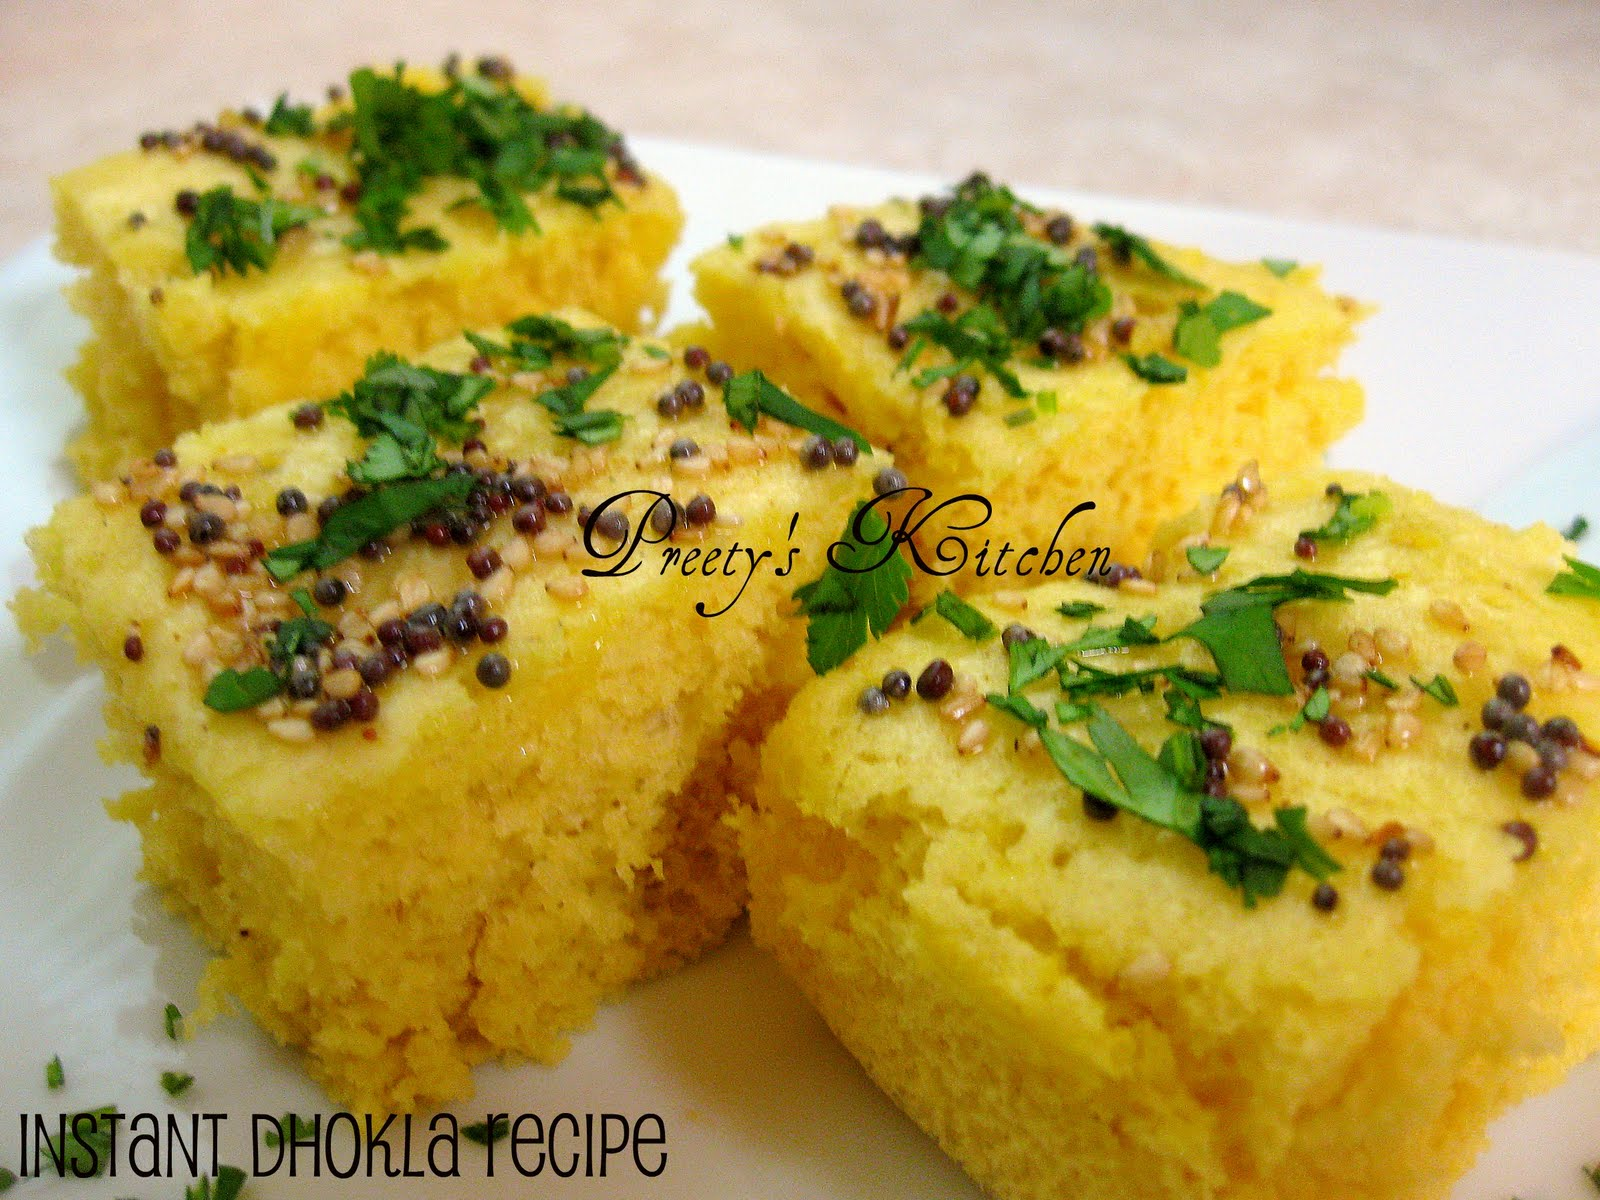 Preetys kitchen instant dhokla recipe steamed gram flour cakes instant dhokla recipe steamed gram flour cakes forumfinder Choice Image